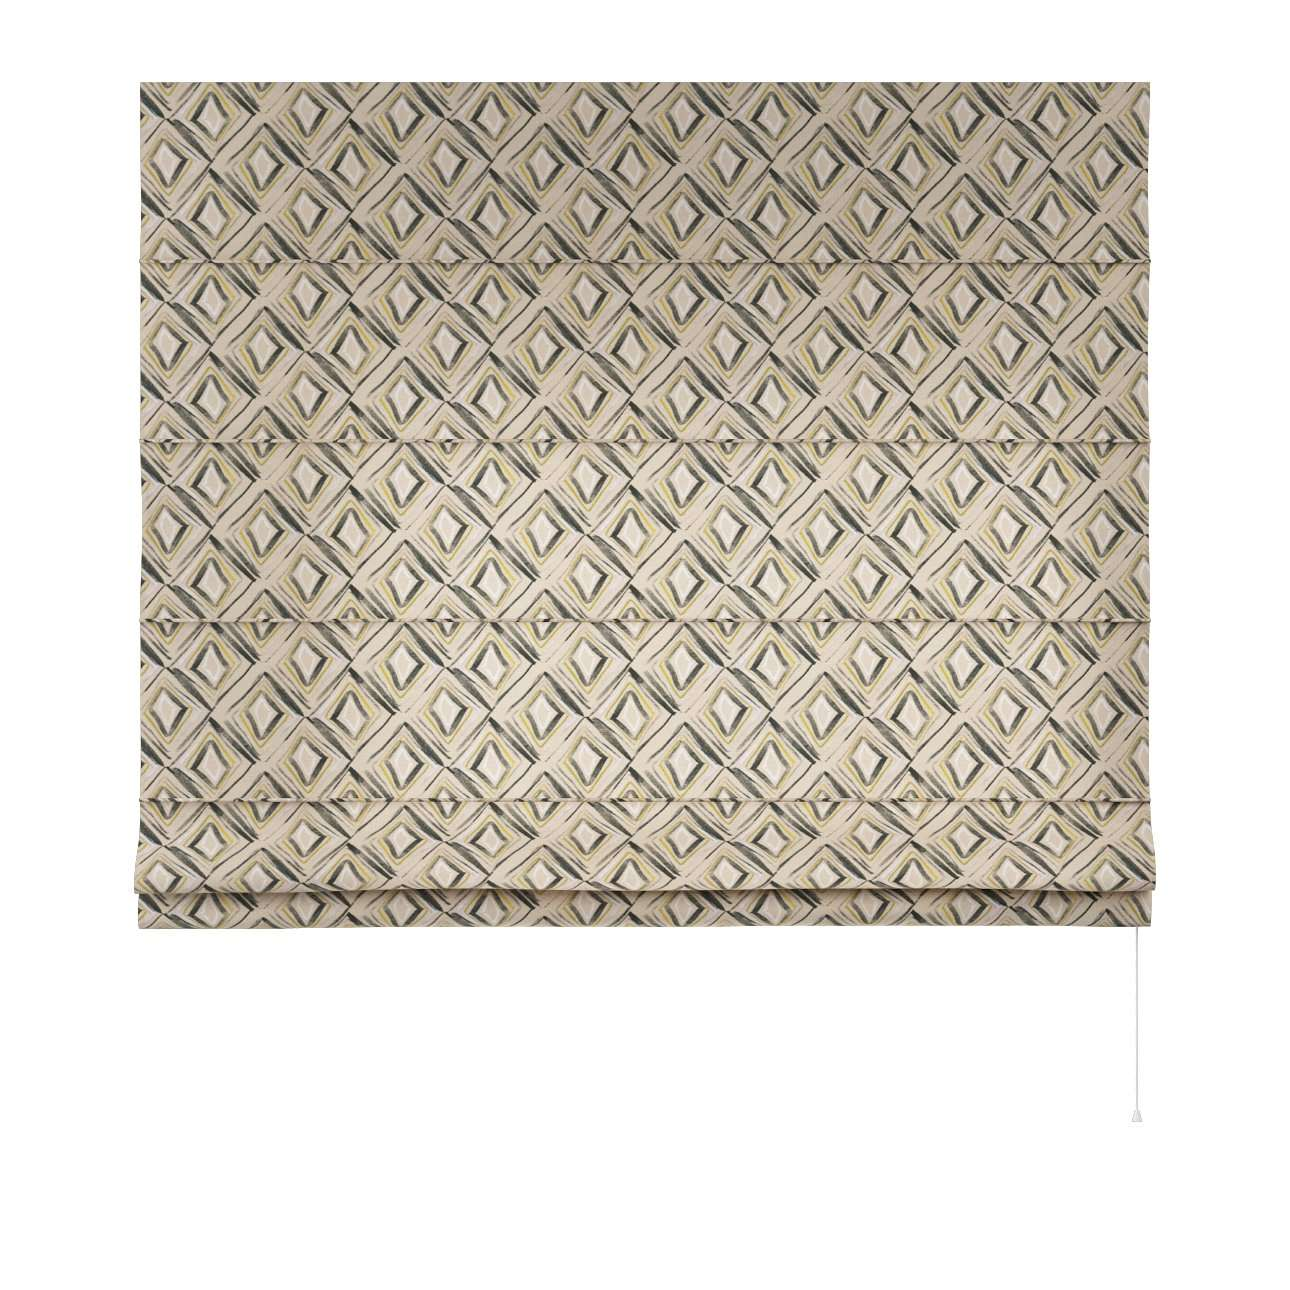 Capri roman blind in collection Londres, fabric: 140-46